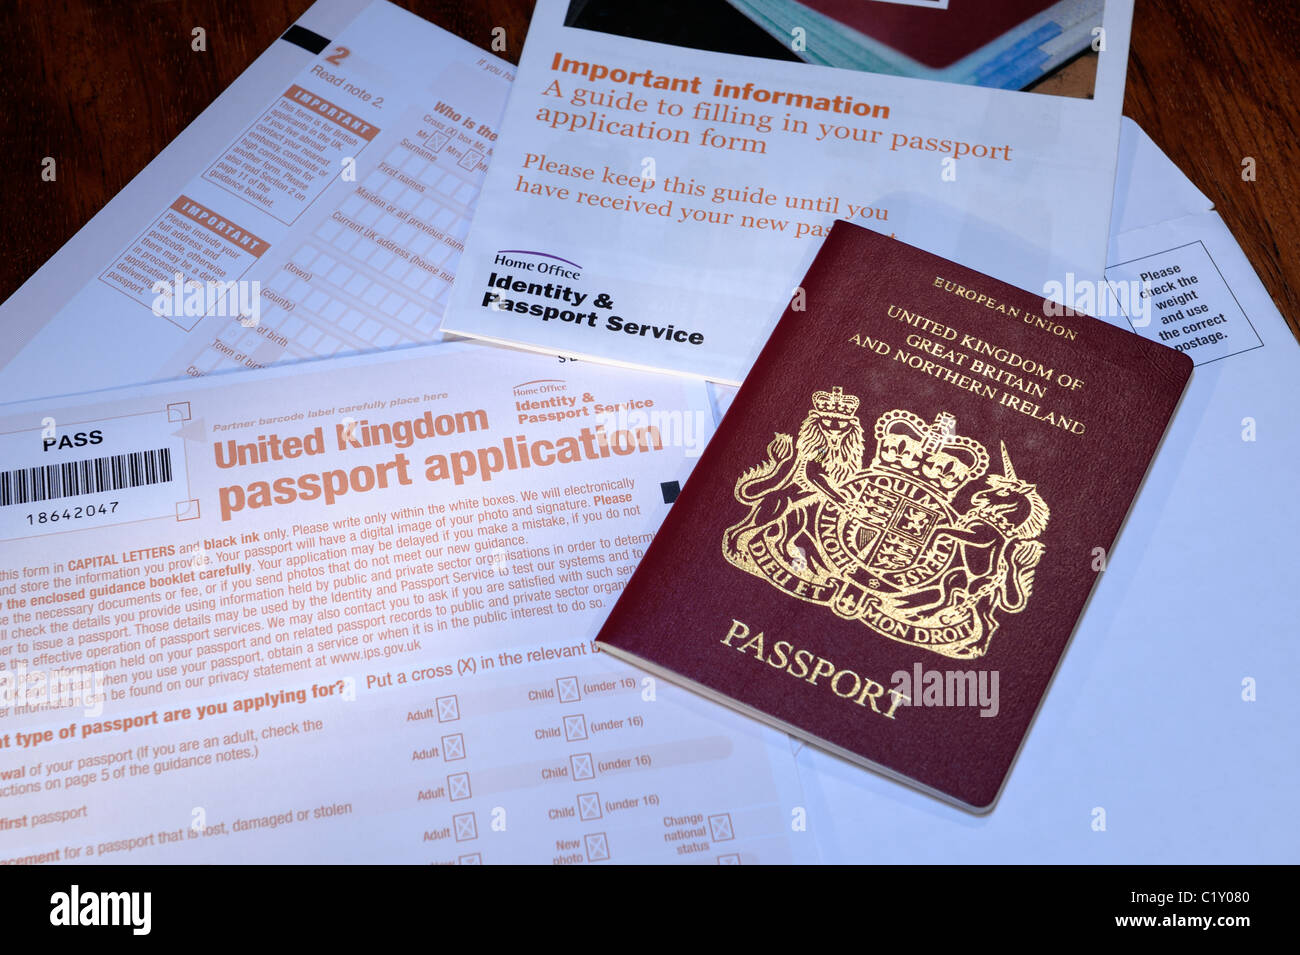 UK Passport Application Form - Stock Image